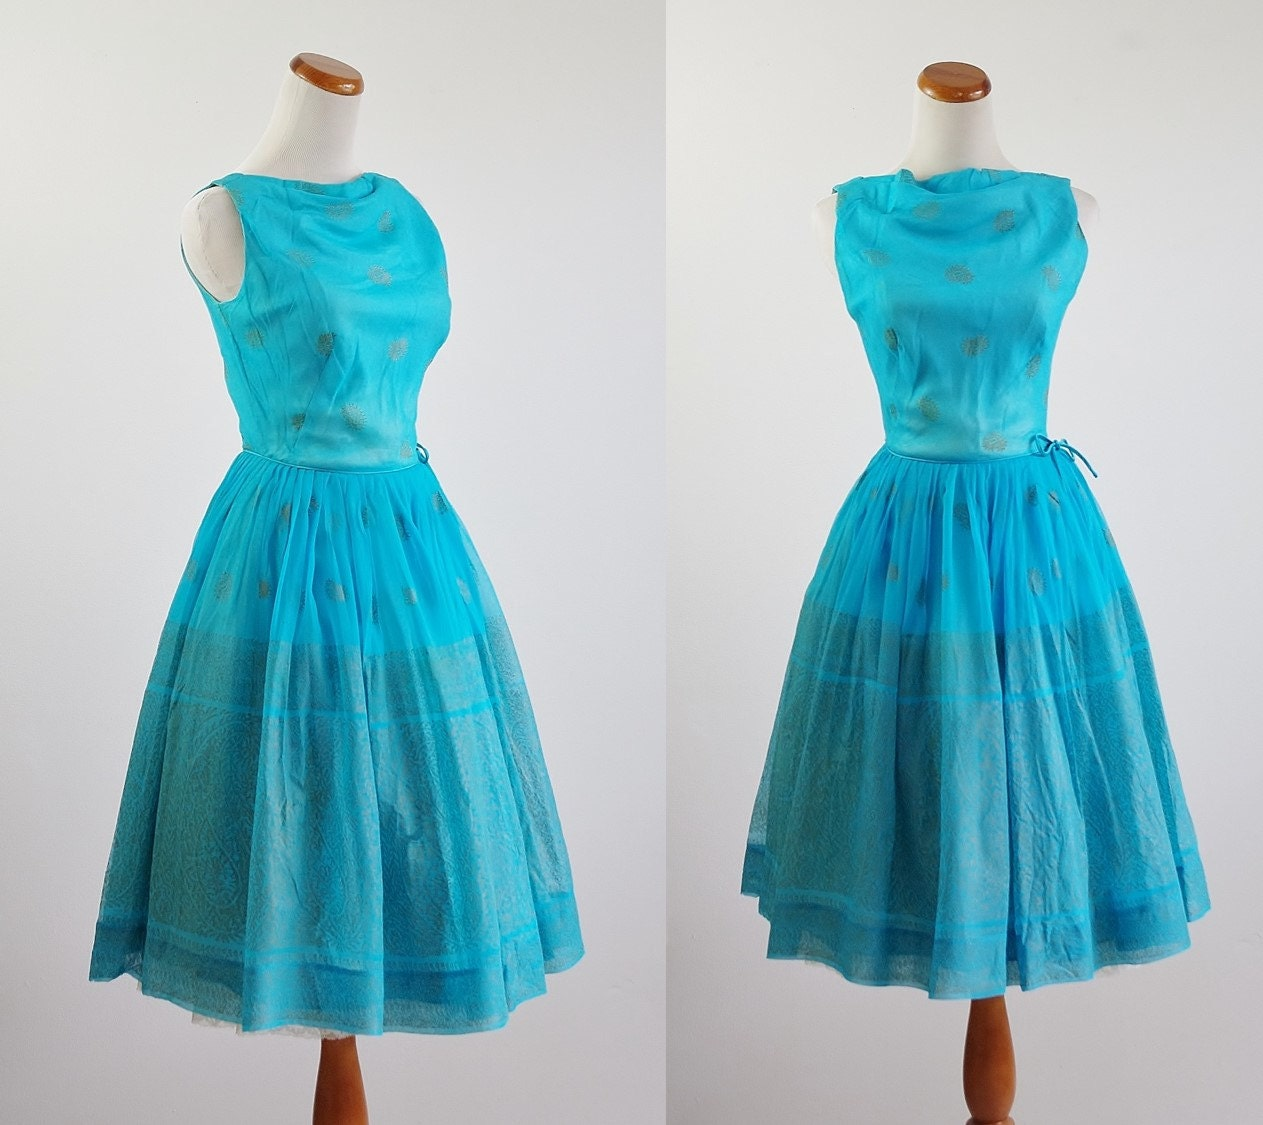 Vintage 50s Dress 60s Cocktail Dress Aqua Blue Chiffon Full